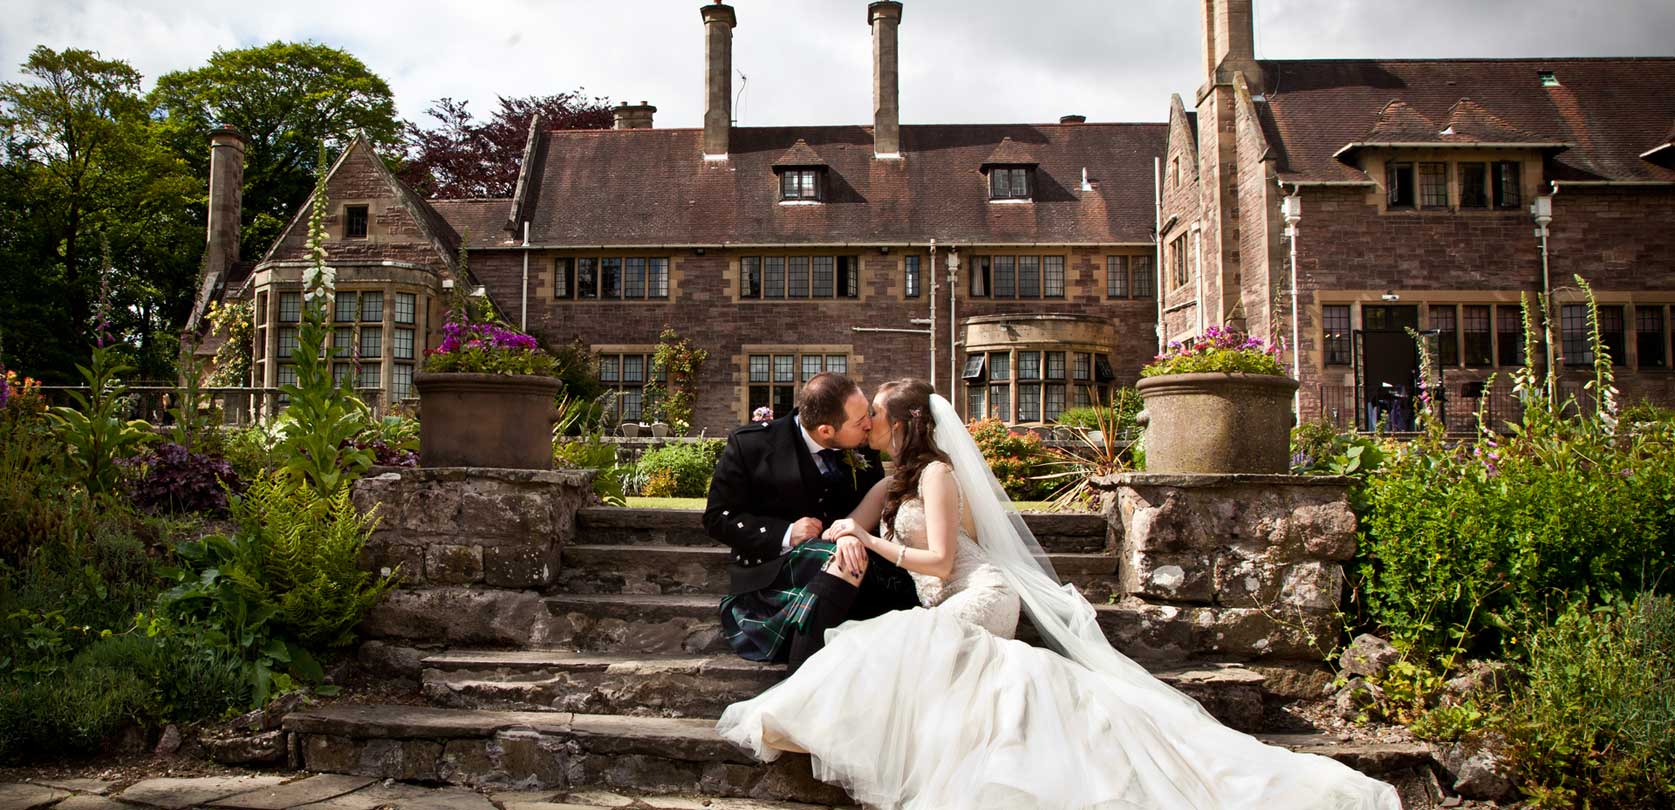 Real Life Wedding photography for Scotland